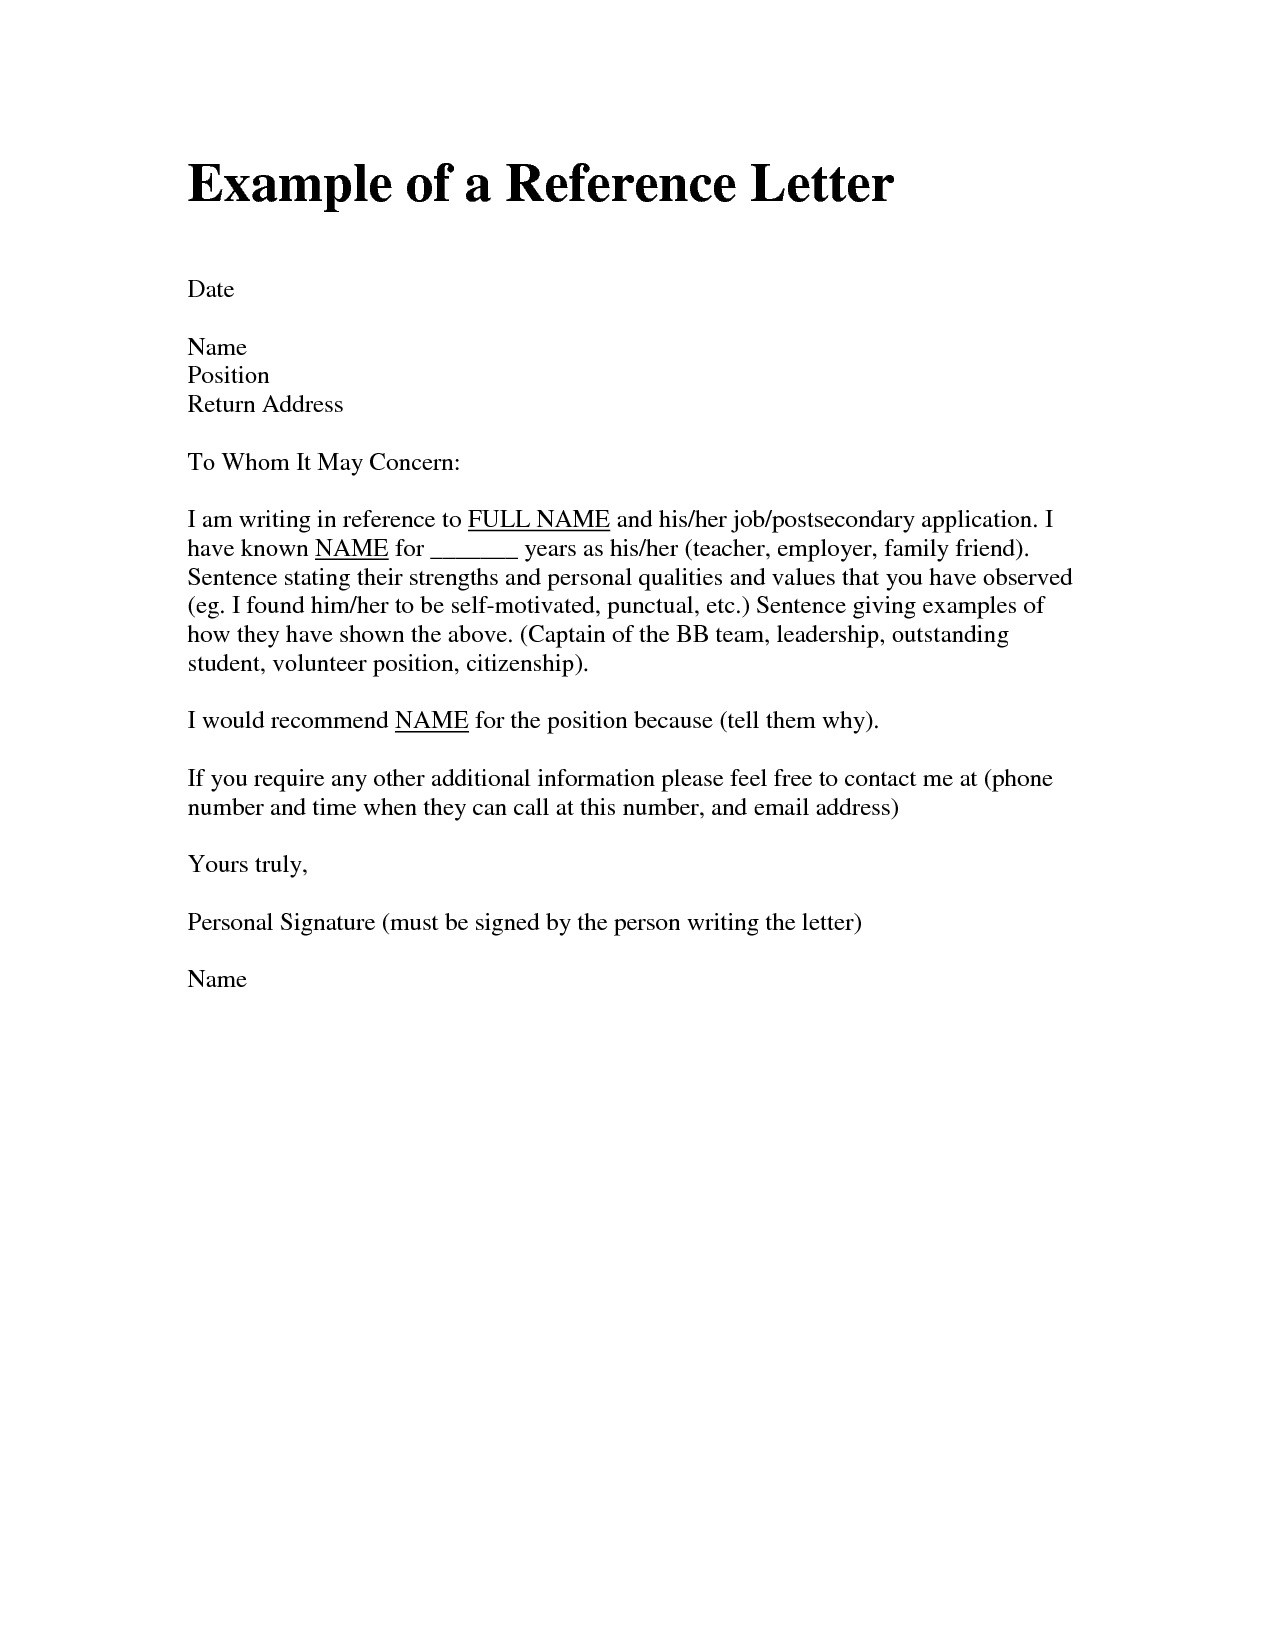 Reference Letter for Friend Character Template - Example Personal Re Mendation Letter for Job Best Re Mendation